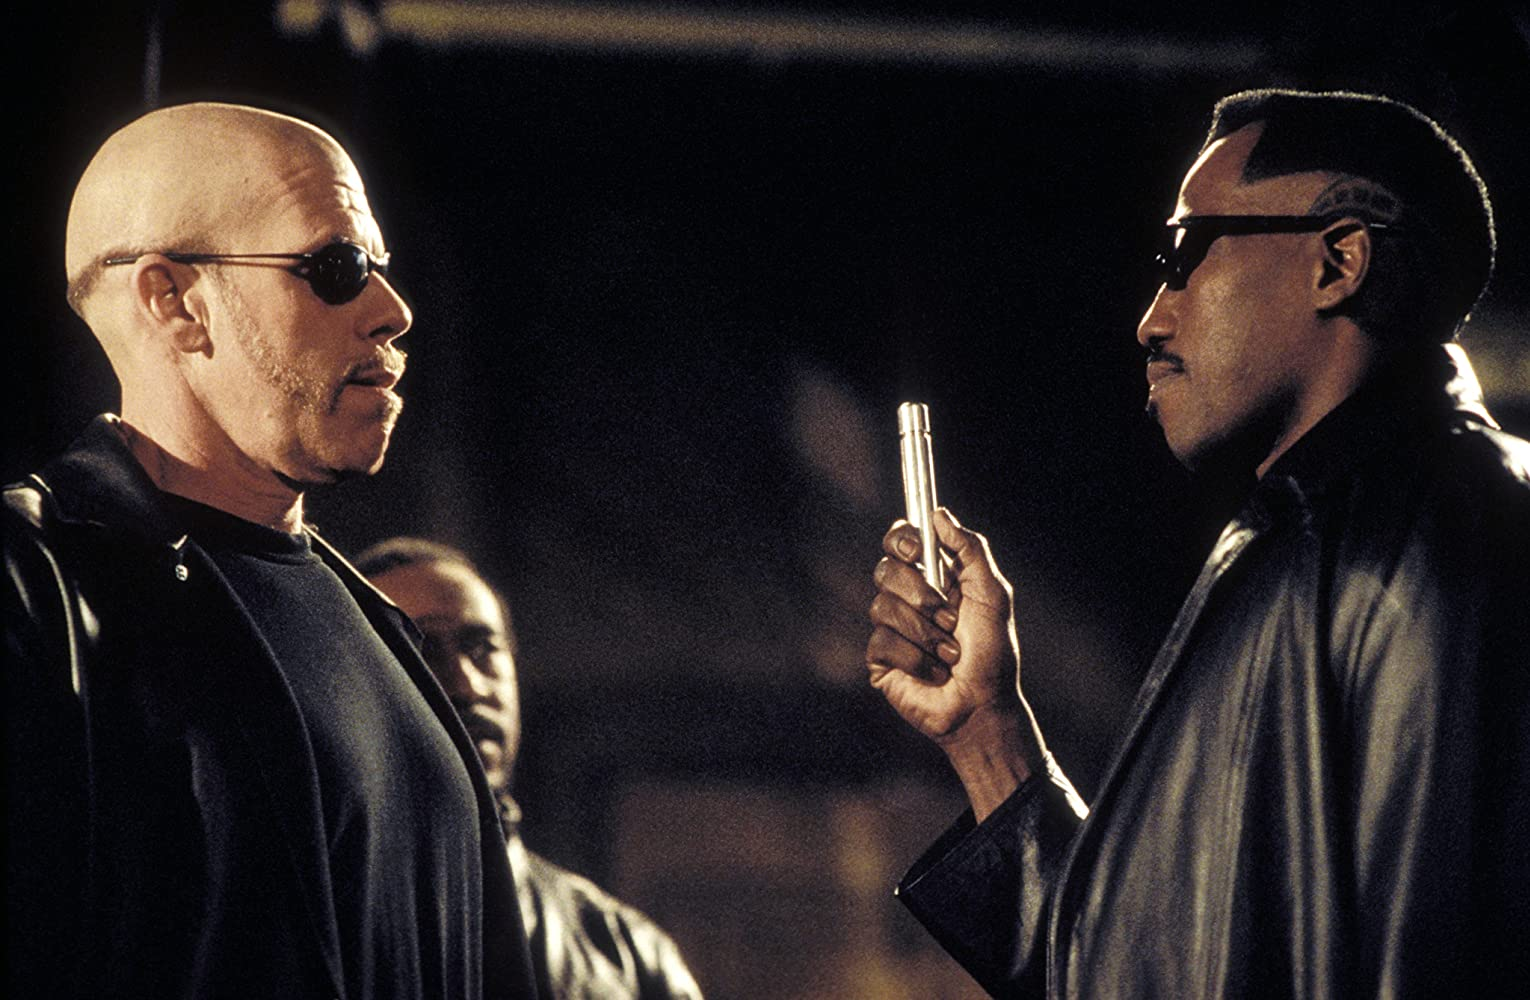 Ron Perlman, Wesley Snipes, and Danny John-Jules in Blade II (2002)